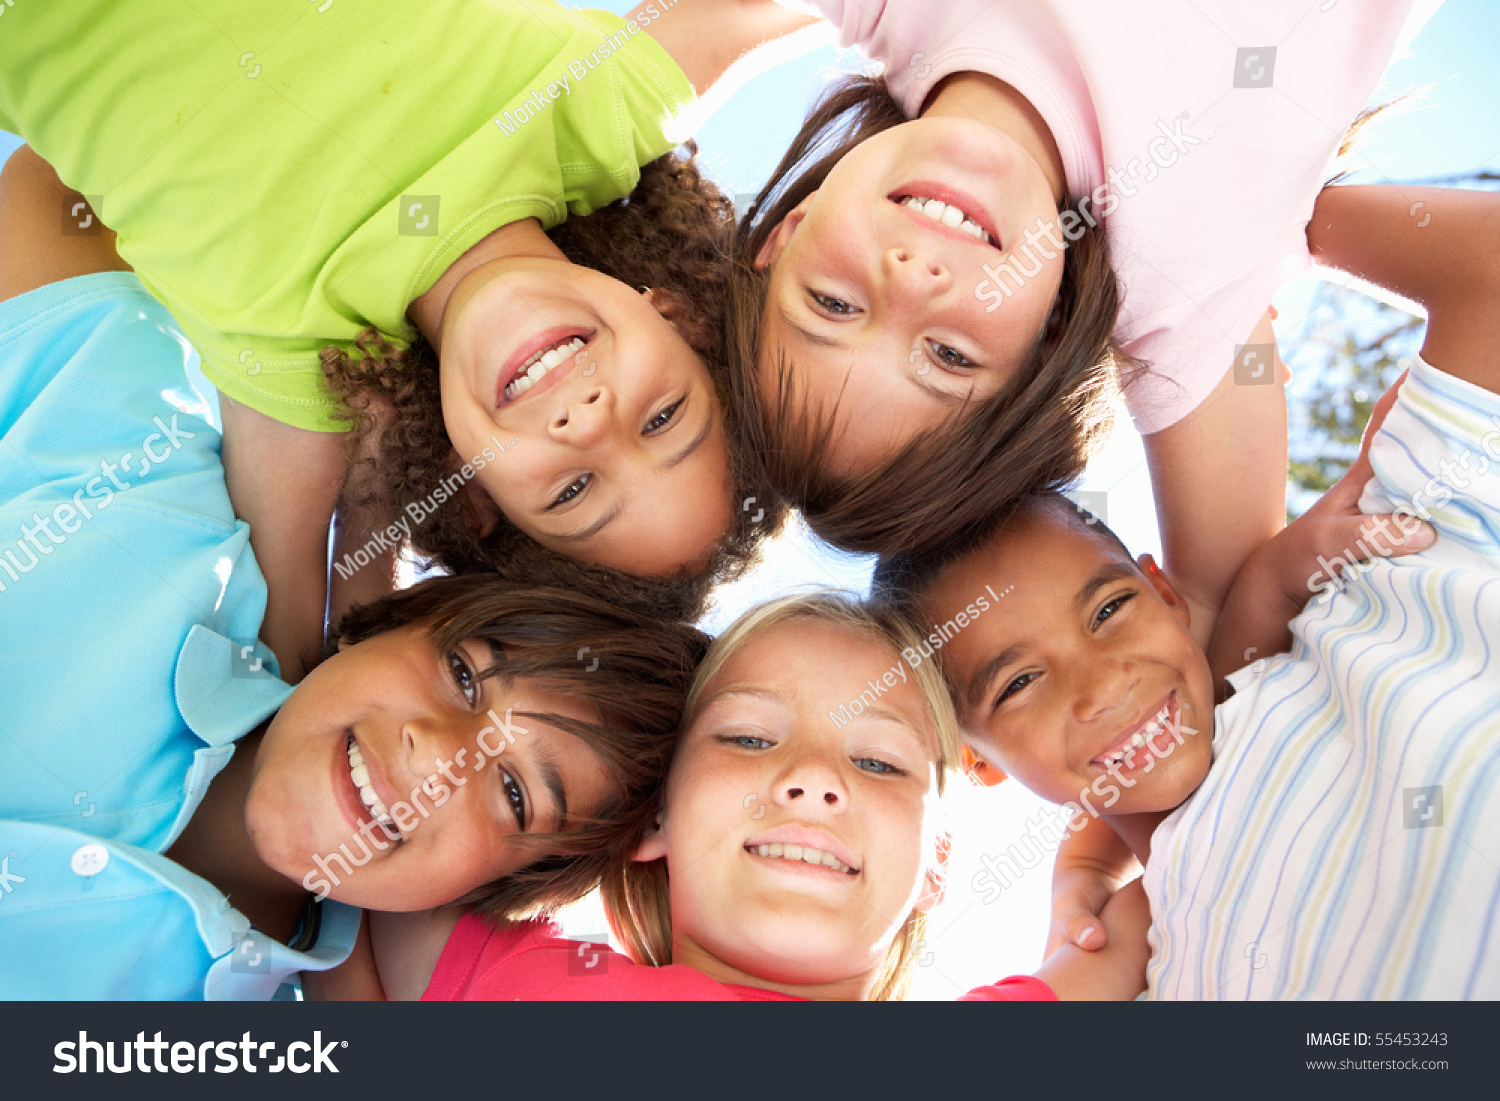 Children Huddled in a Circle